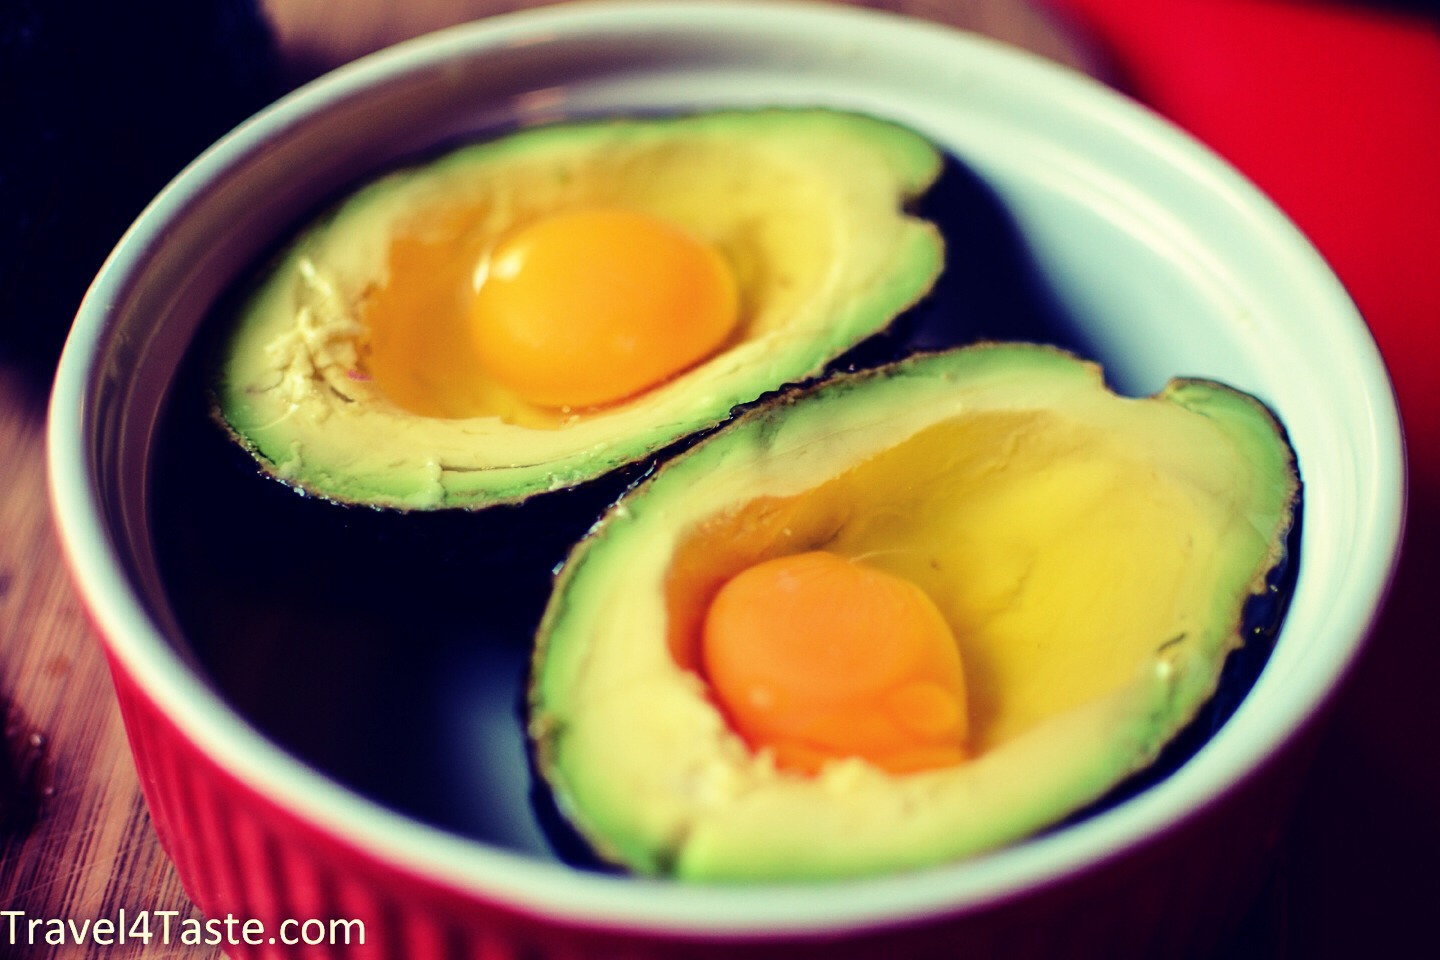 Put each egg in avocado slice and add salt and pepper for flavor